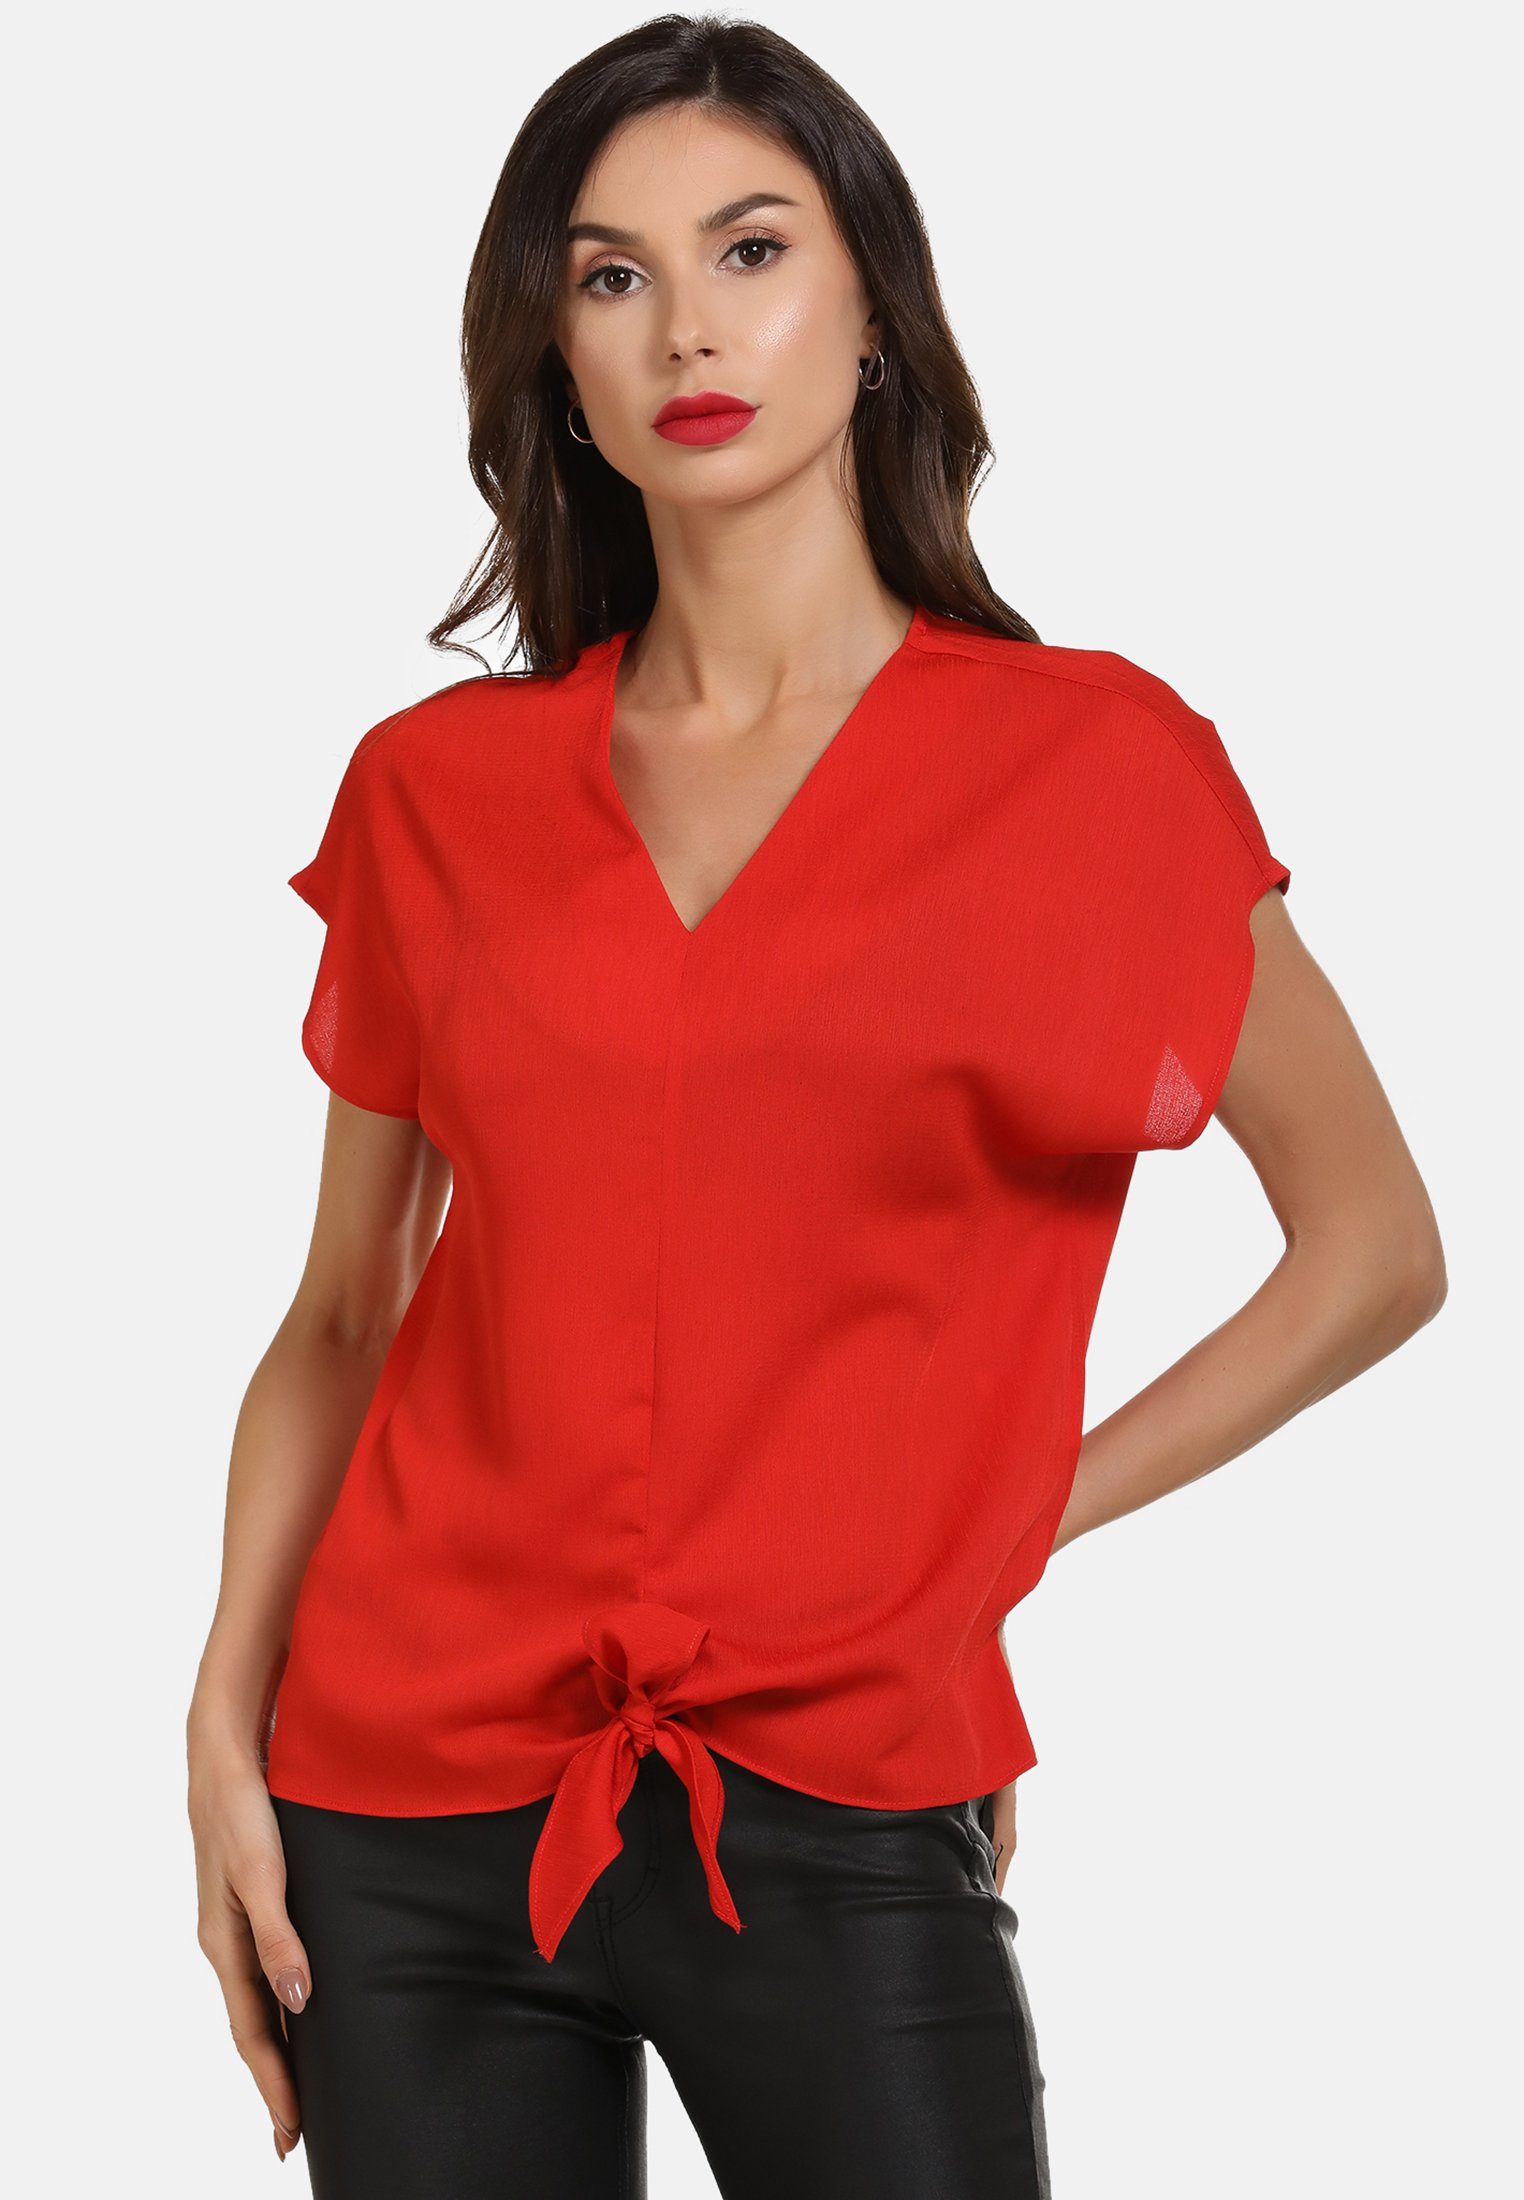 2020 New Women's Clothing faina BLUSE Blouse rot XYnJ1of7f